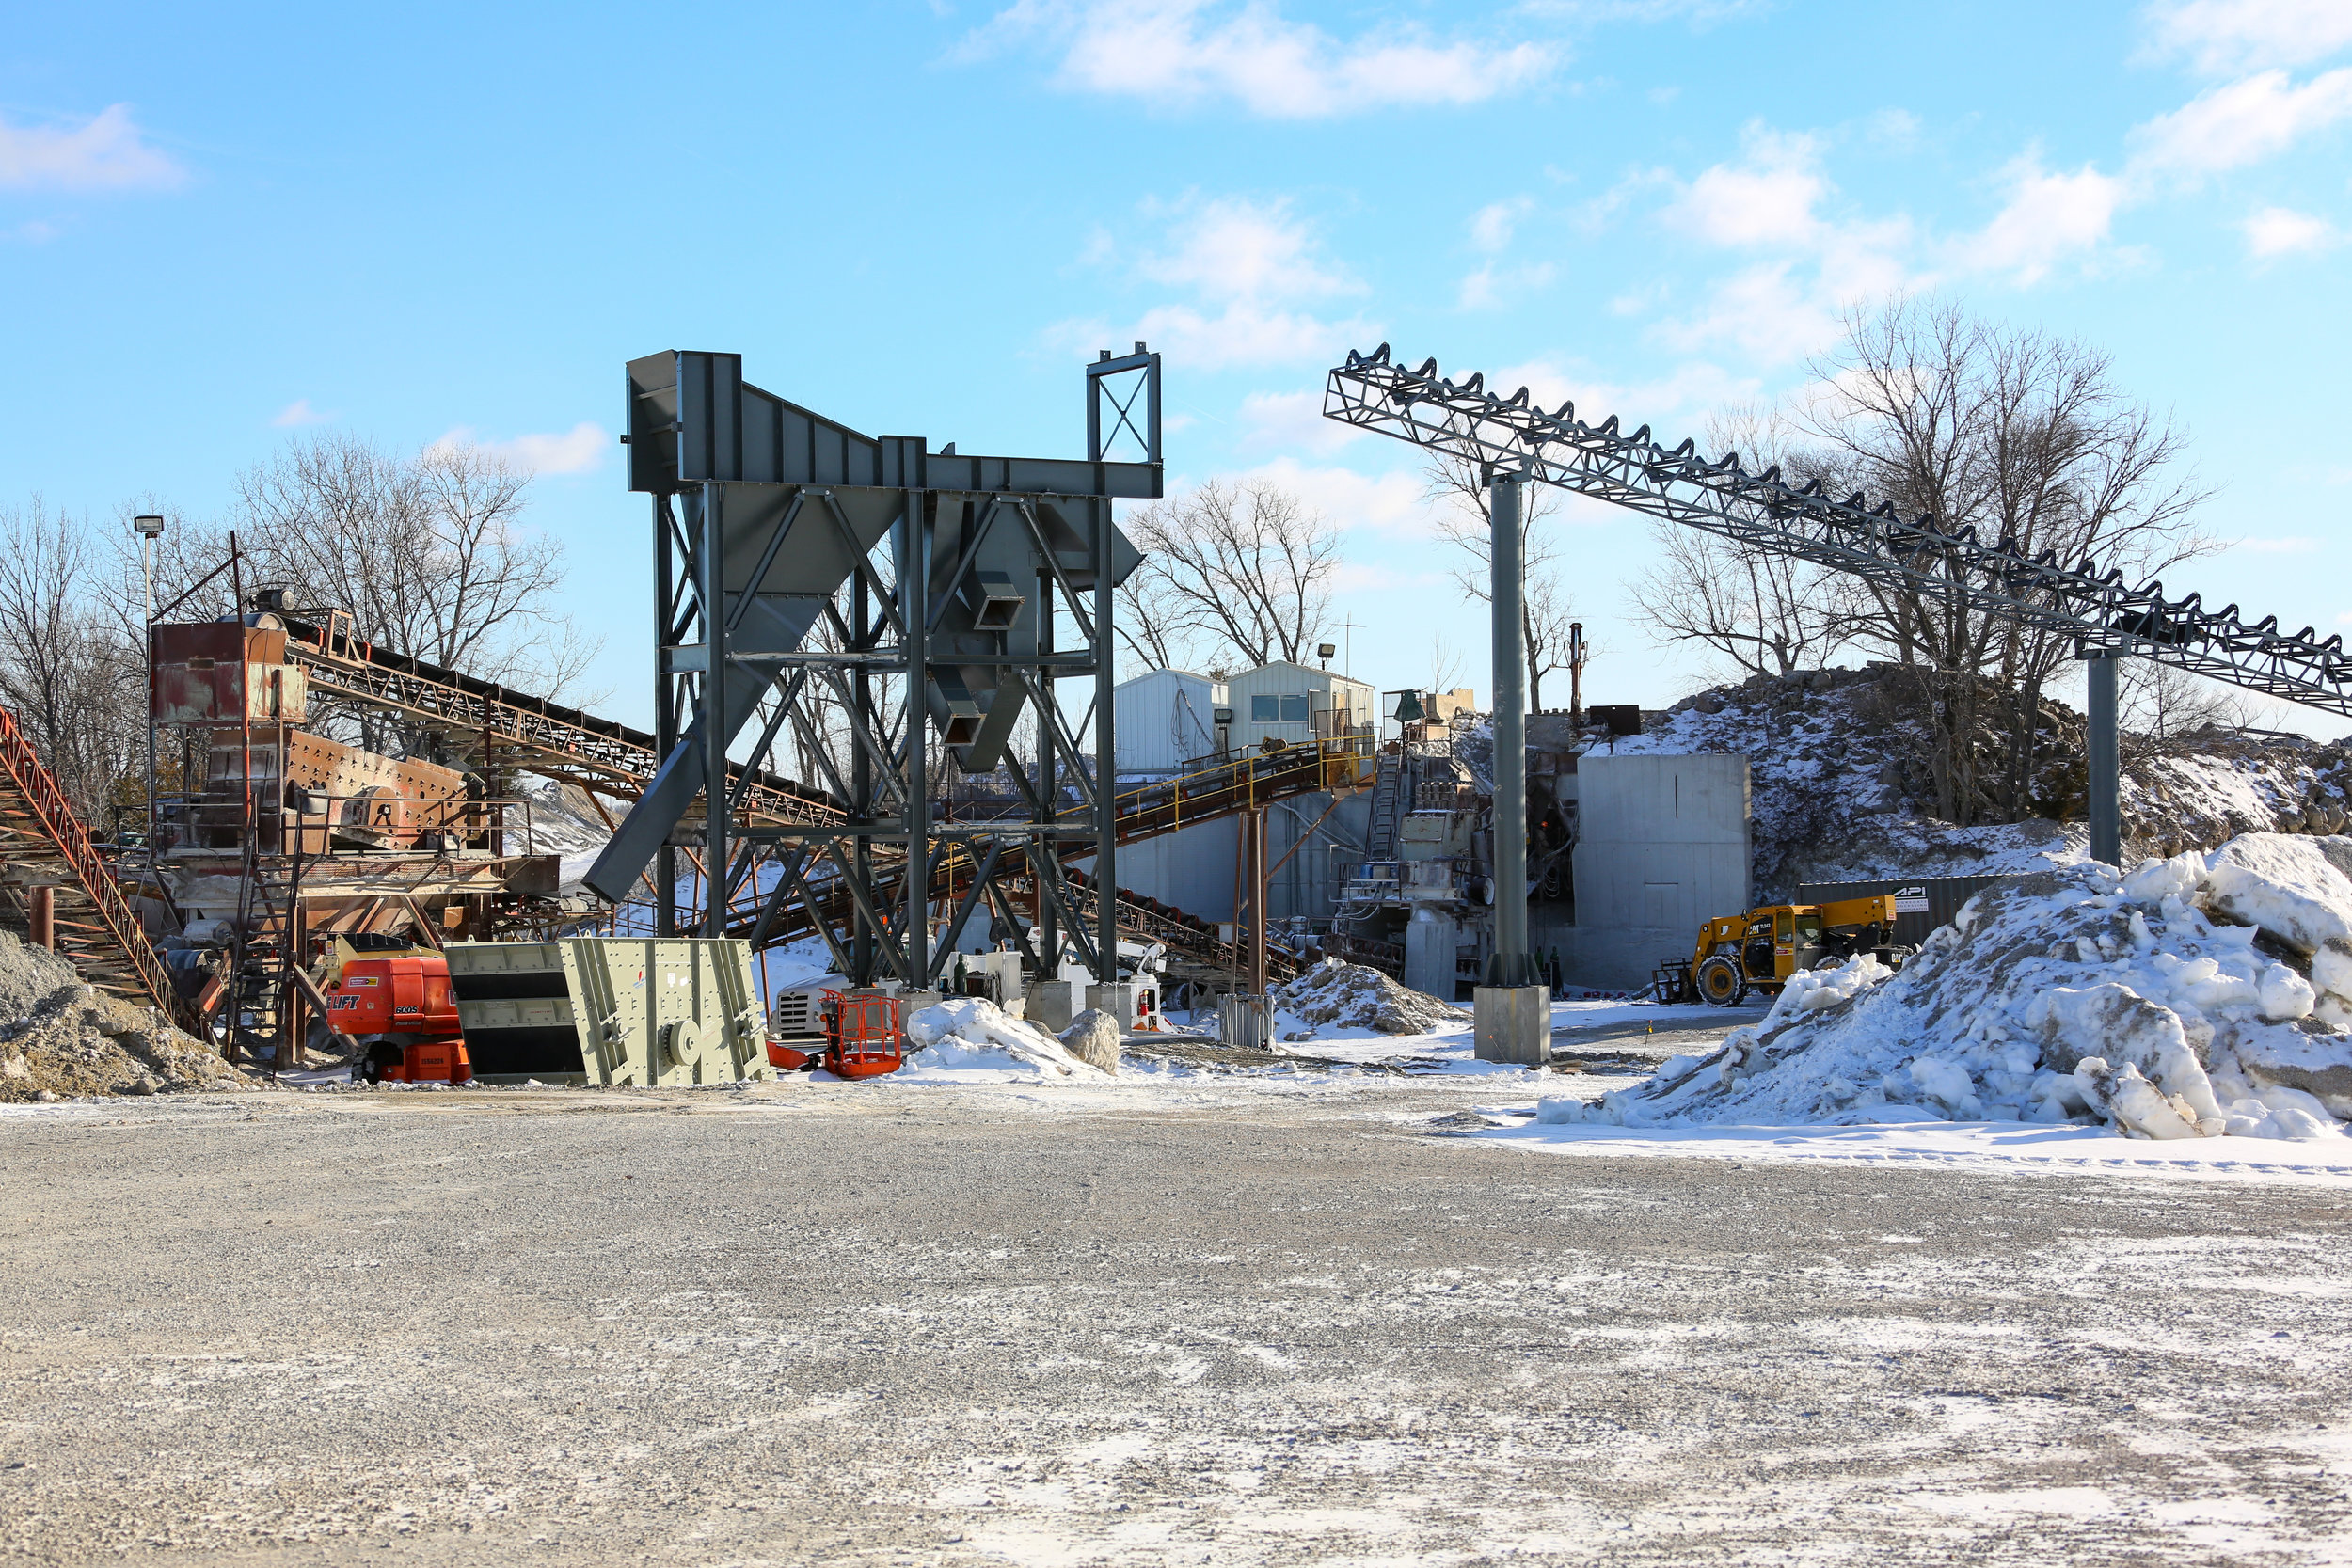 Screentower and Main Conveyor in Process - January 22, 2014